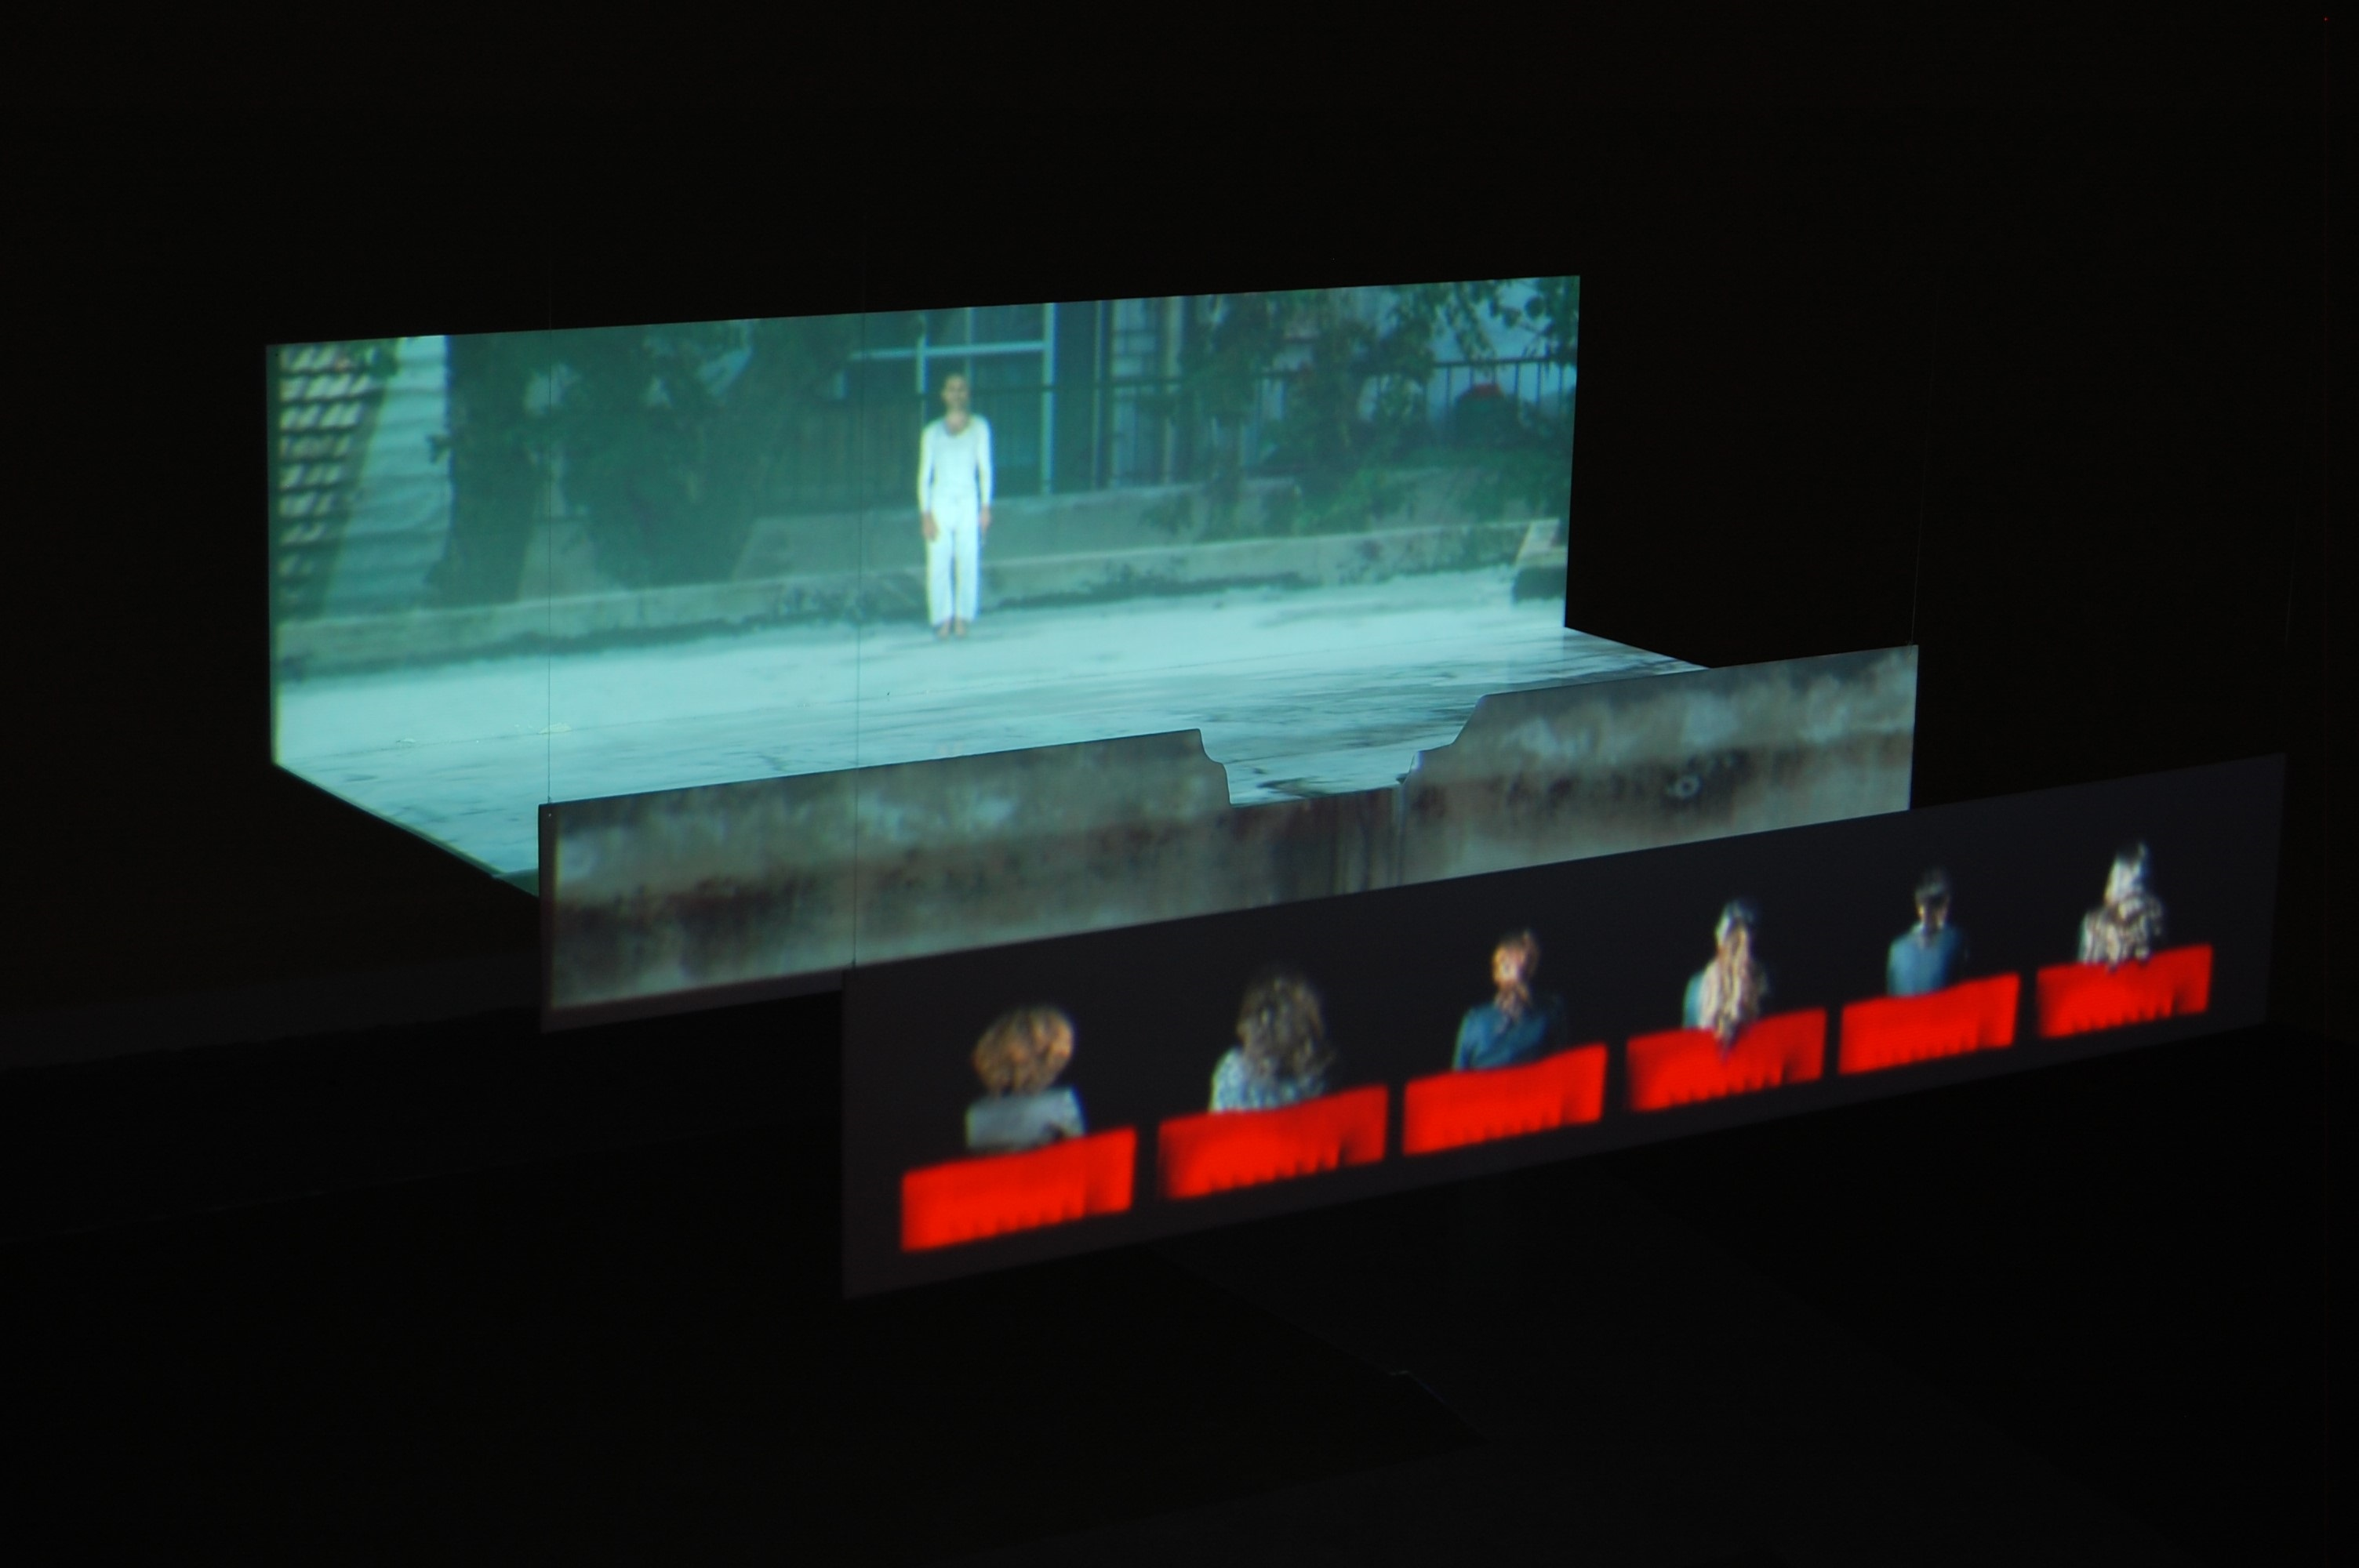 Michel Platnic, Self-portrait as a Warrior video installation, 0557' 2012 - 7